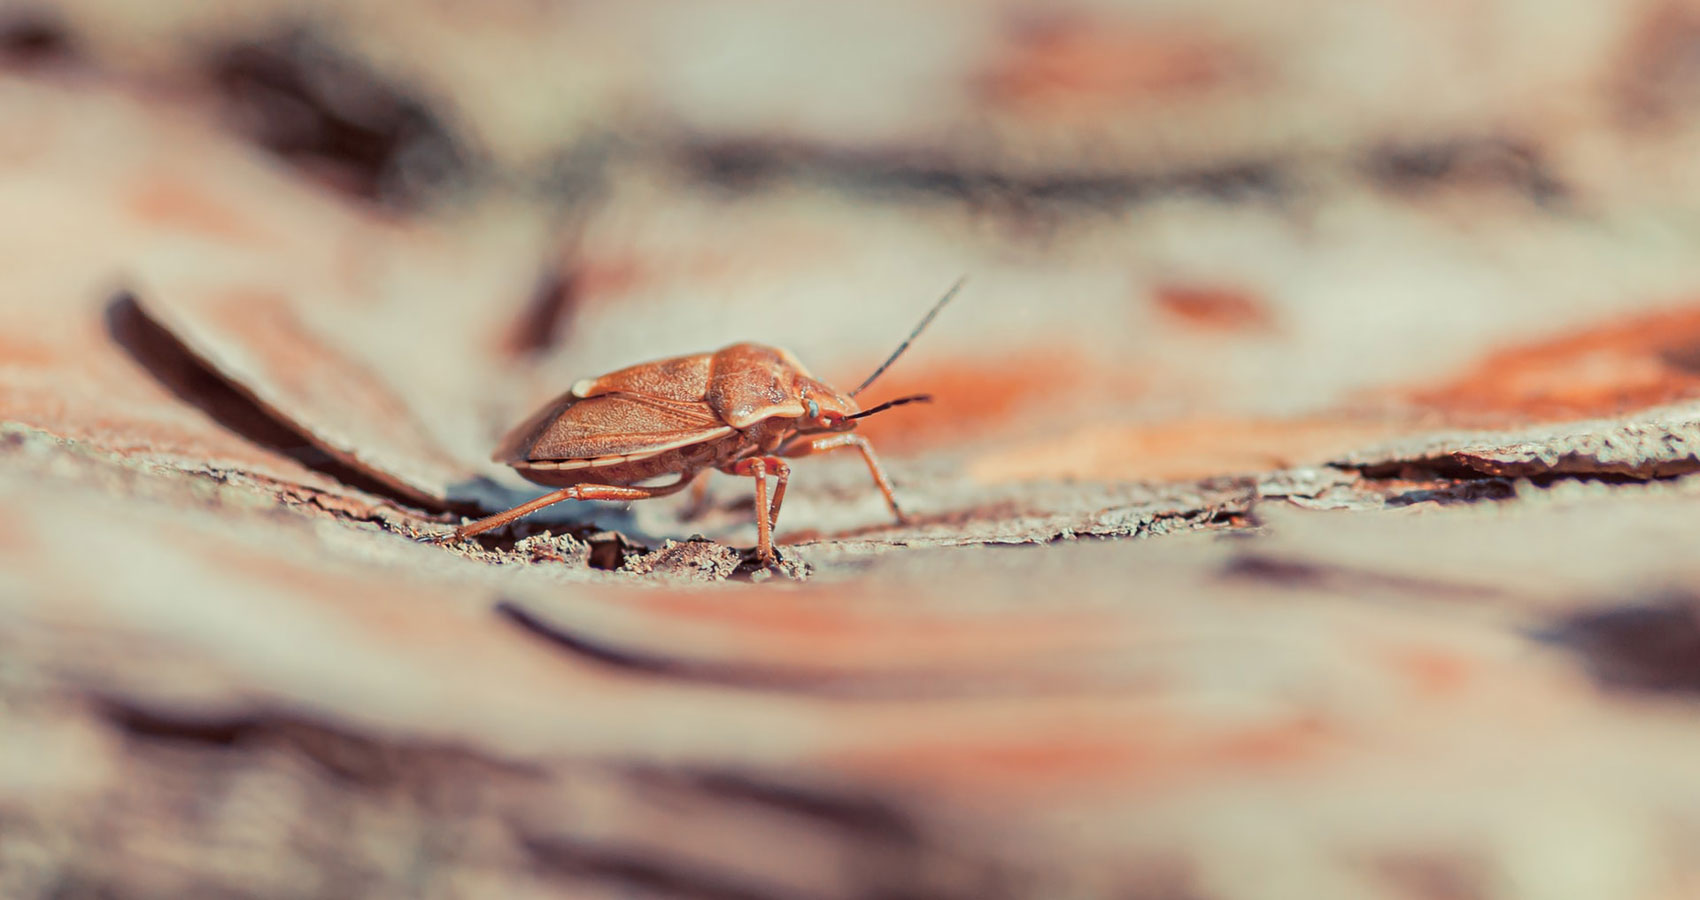 Cockroach, a short story written by Andrew Scobie at Spillwords.com